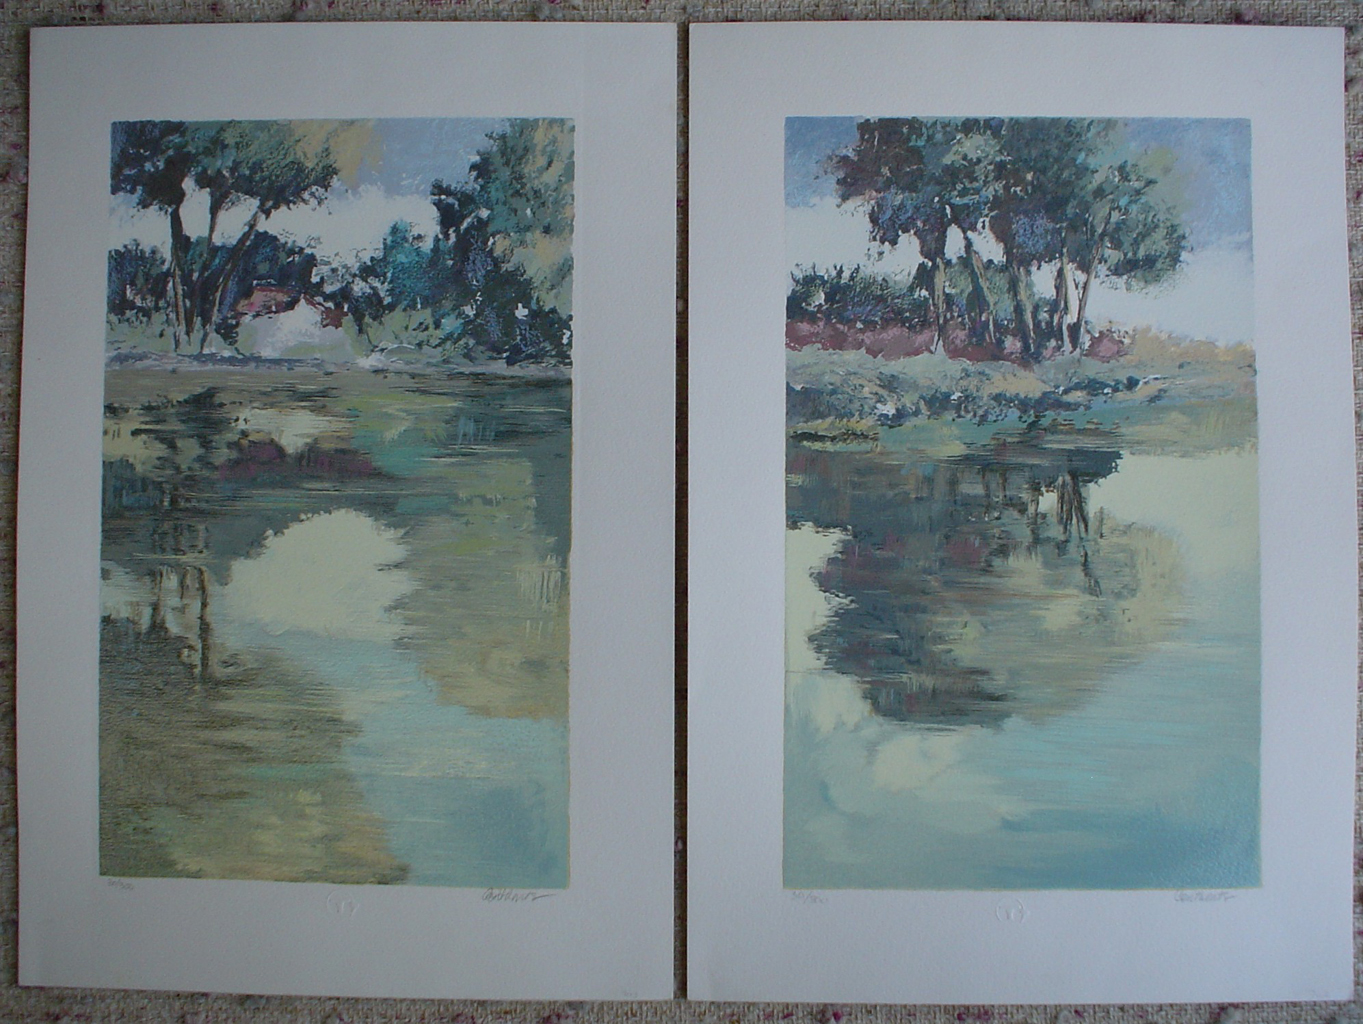 Serenity 4 and Serenity 3 by Corthaus, group of 2 original silkscreens, signed and numbered edition of 300